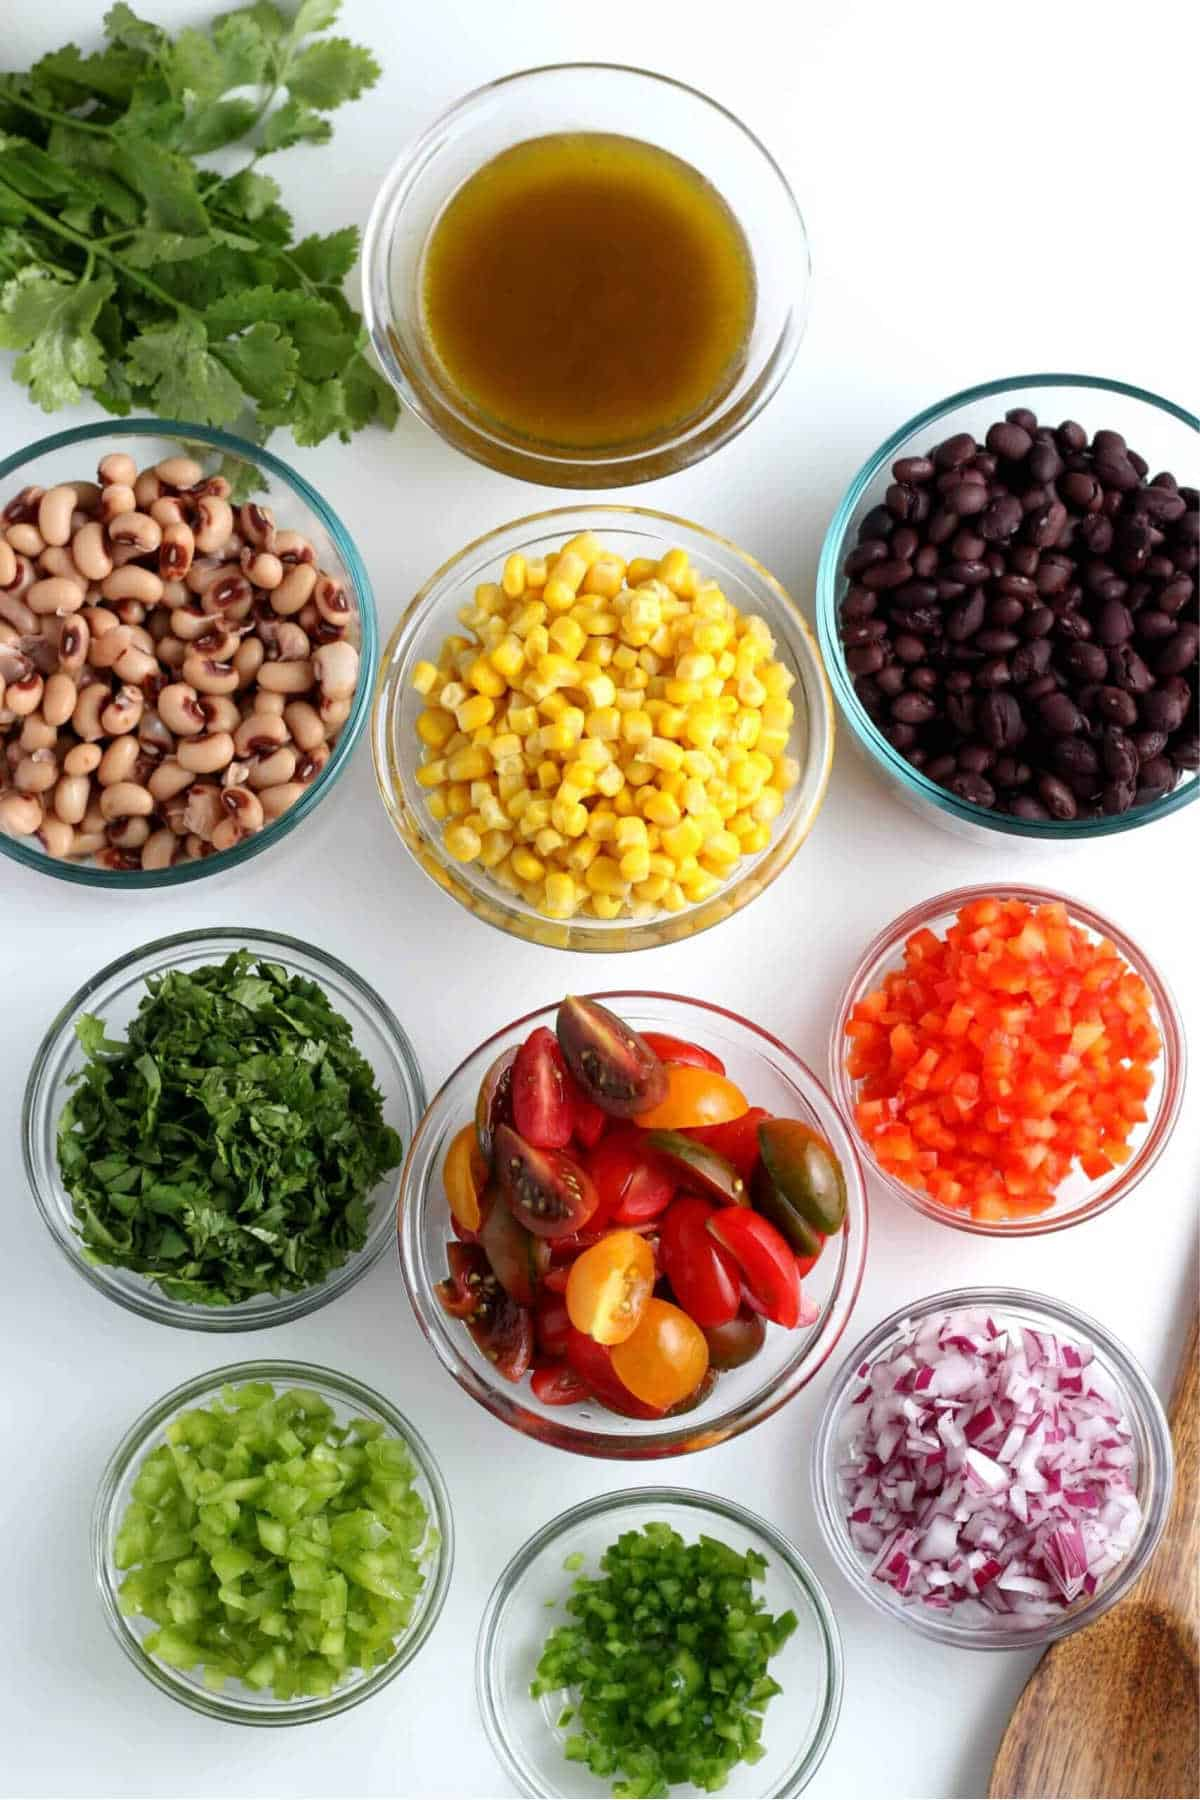 Overhead view of each ingredient pared and diced and in their own small bowl.